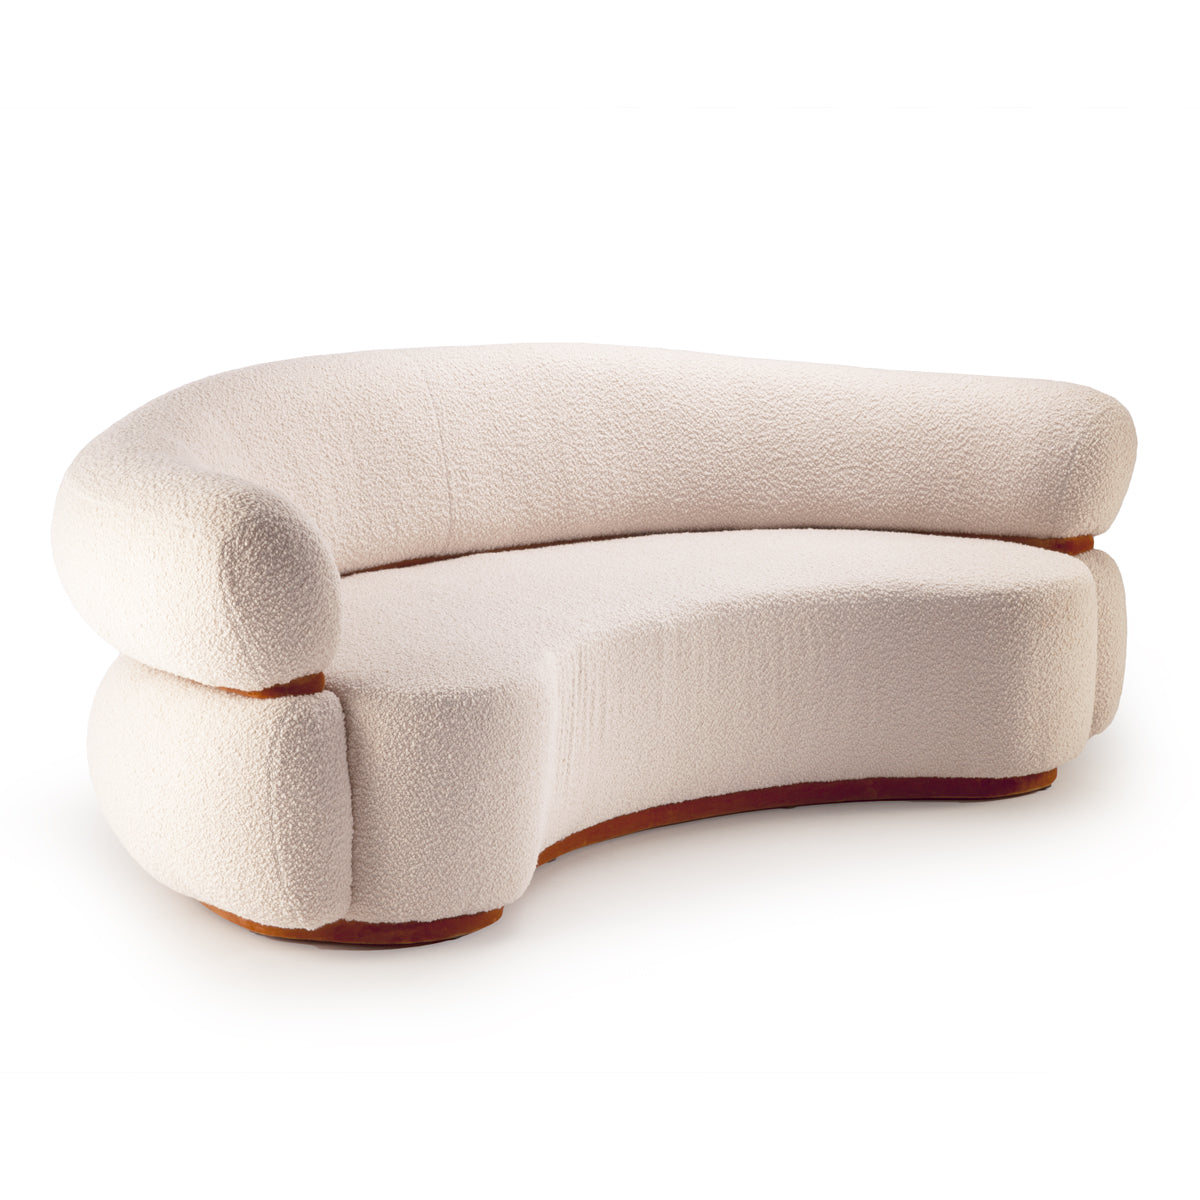 Malibu Round Couch by Dooq | Do Shop